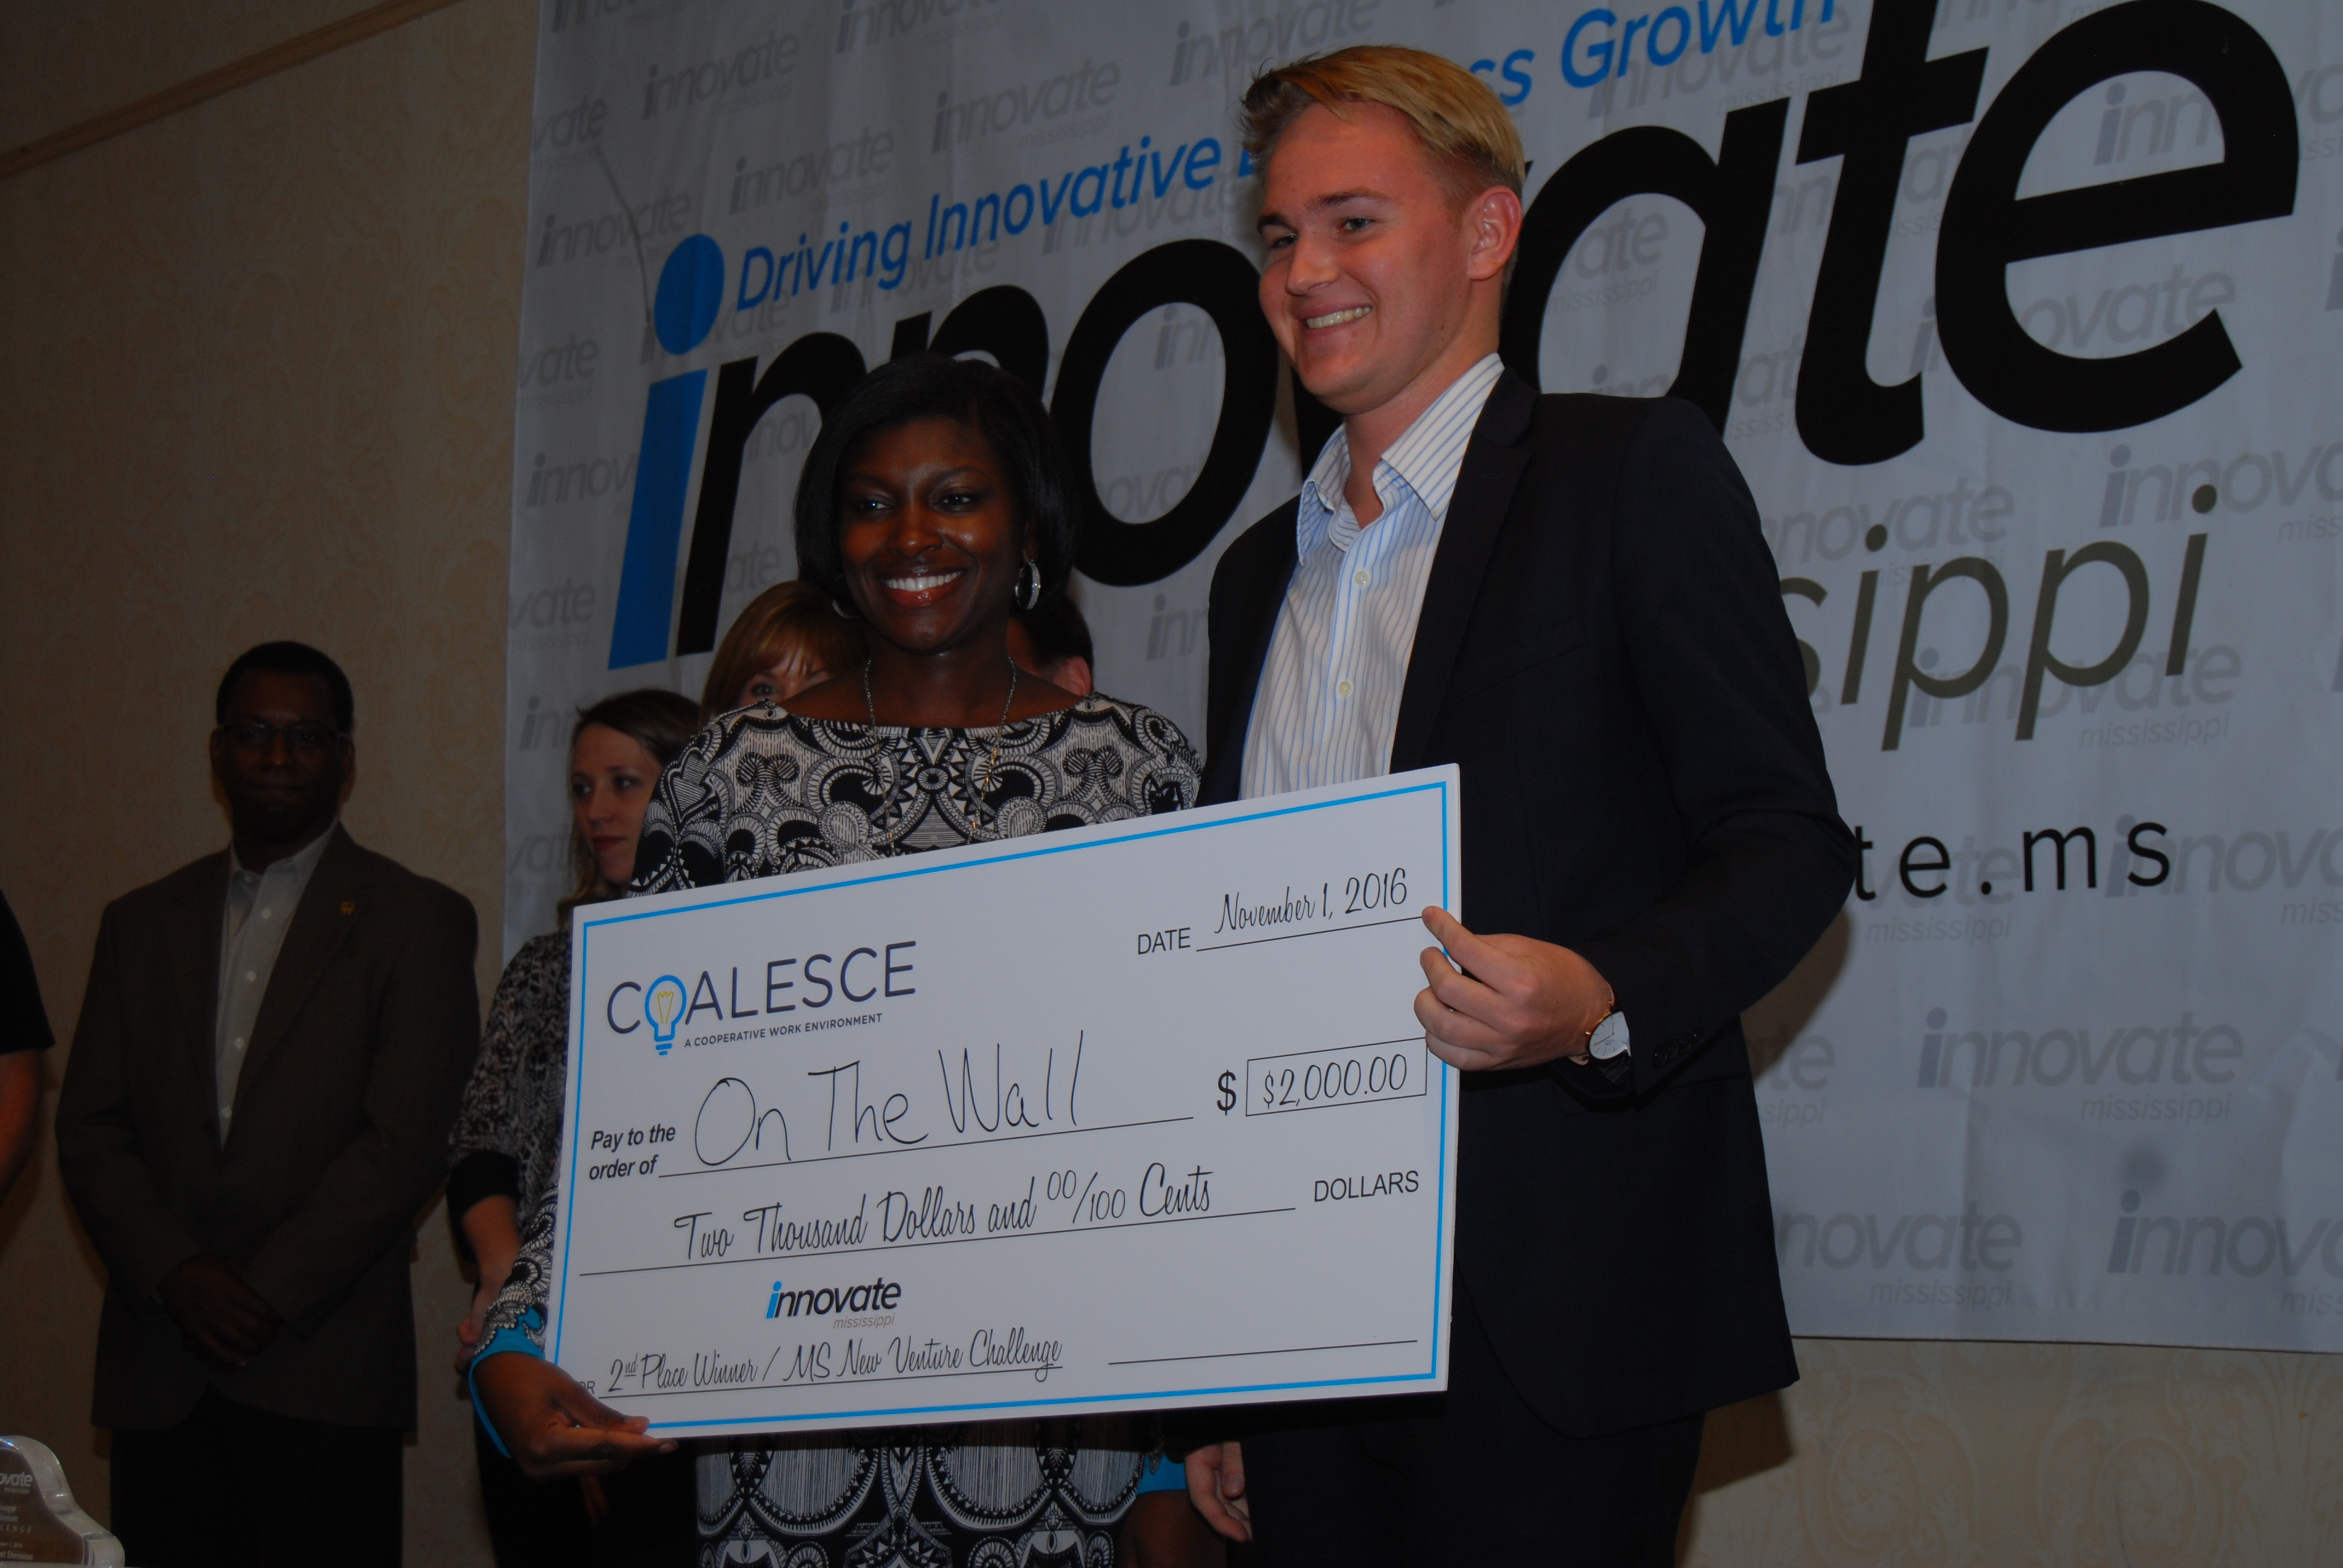 On the Wall - Mississippi New Venture Challenge